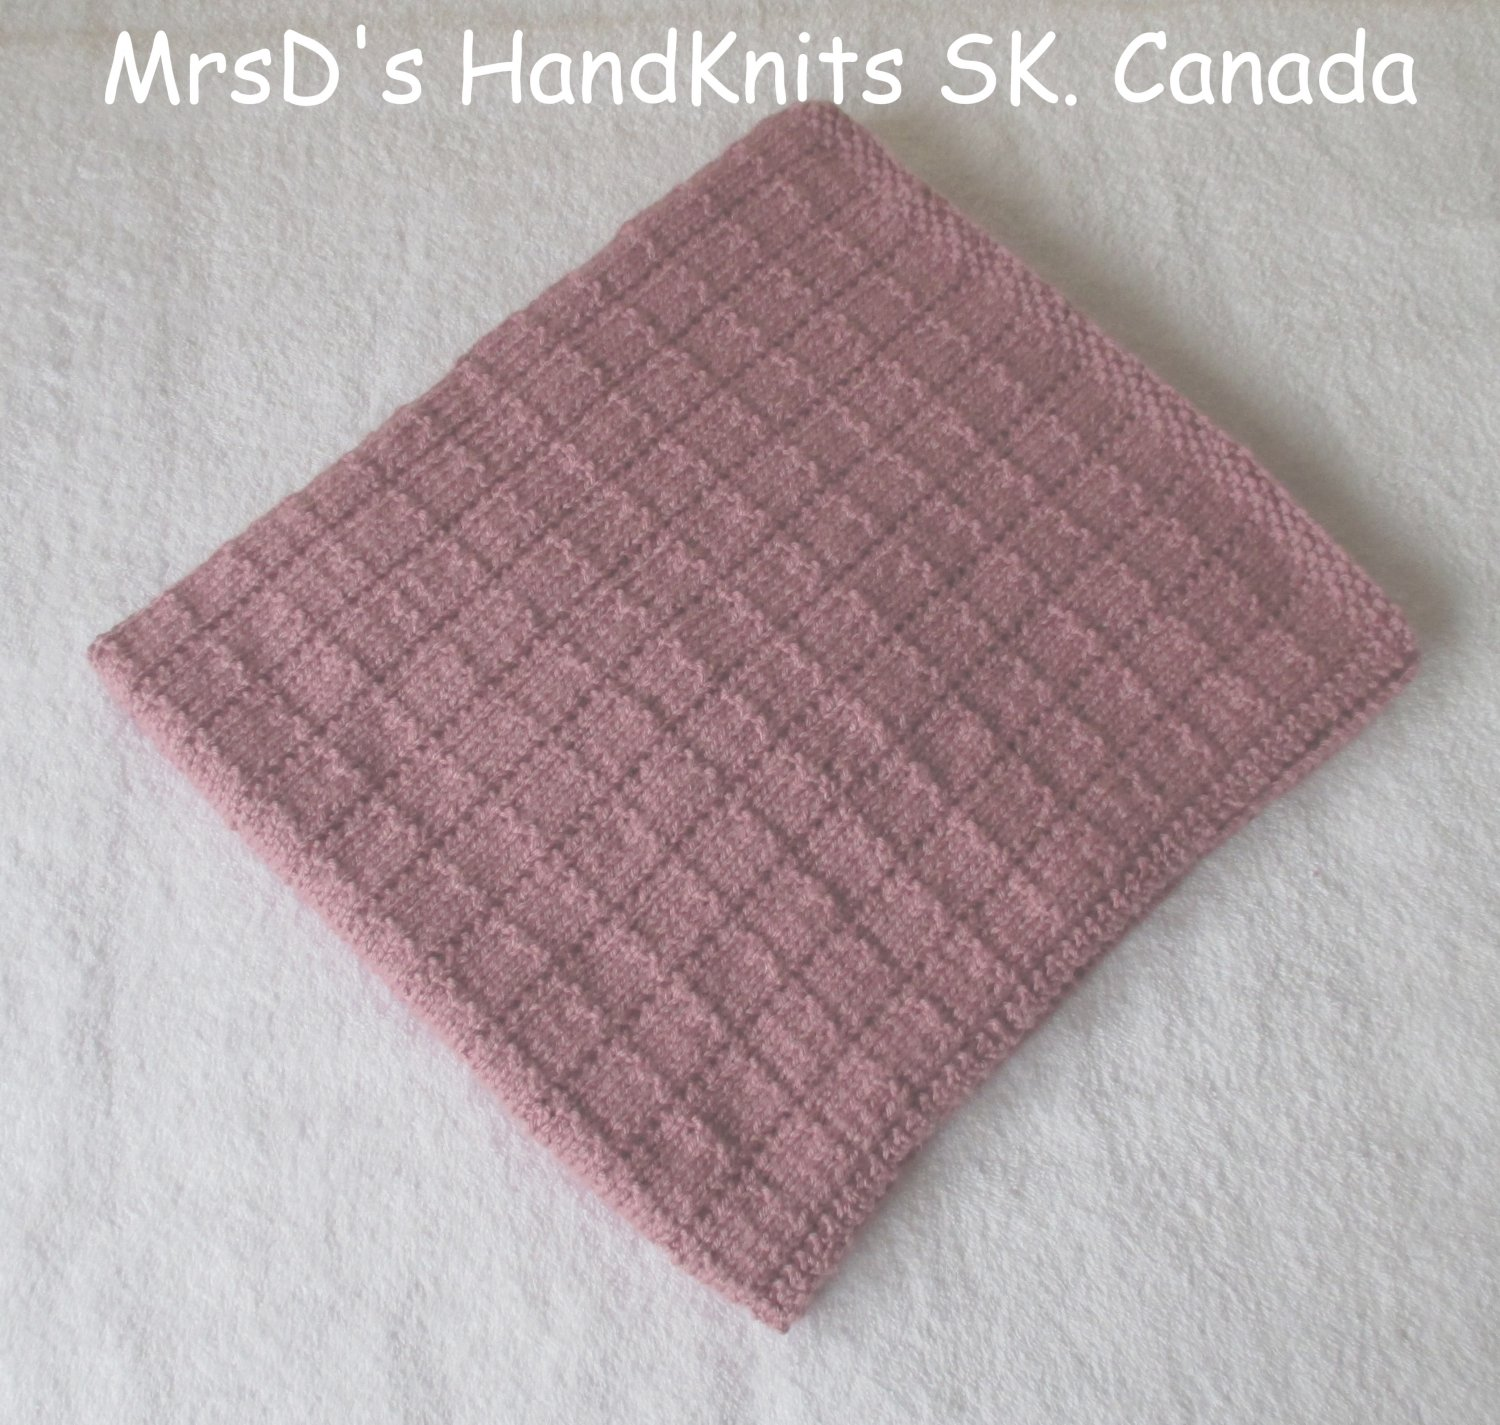 Hand Knit 27 X 31 inch Baby Blanket Lap Blanket Afghan Dusty Rose Color